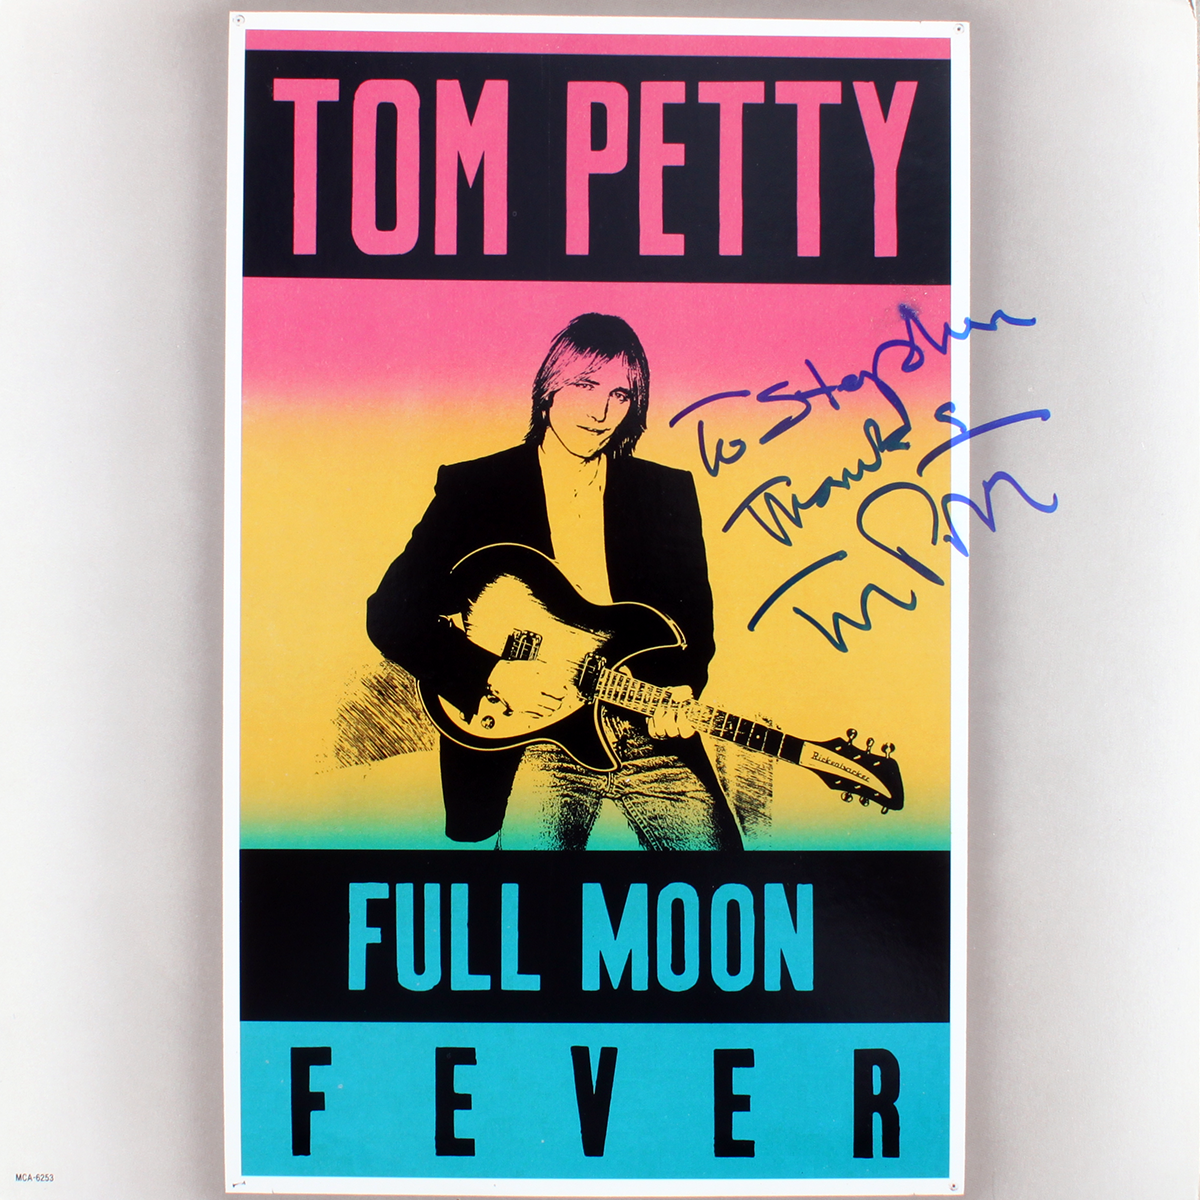 Tom Petty - Full Moon Fever LP #3